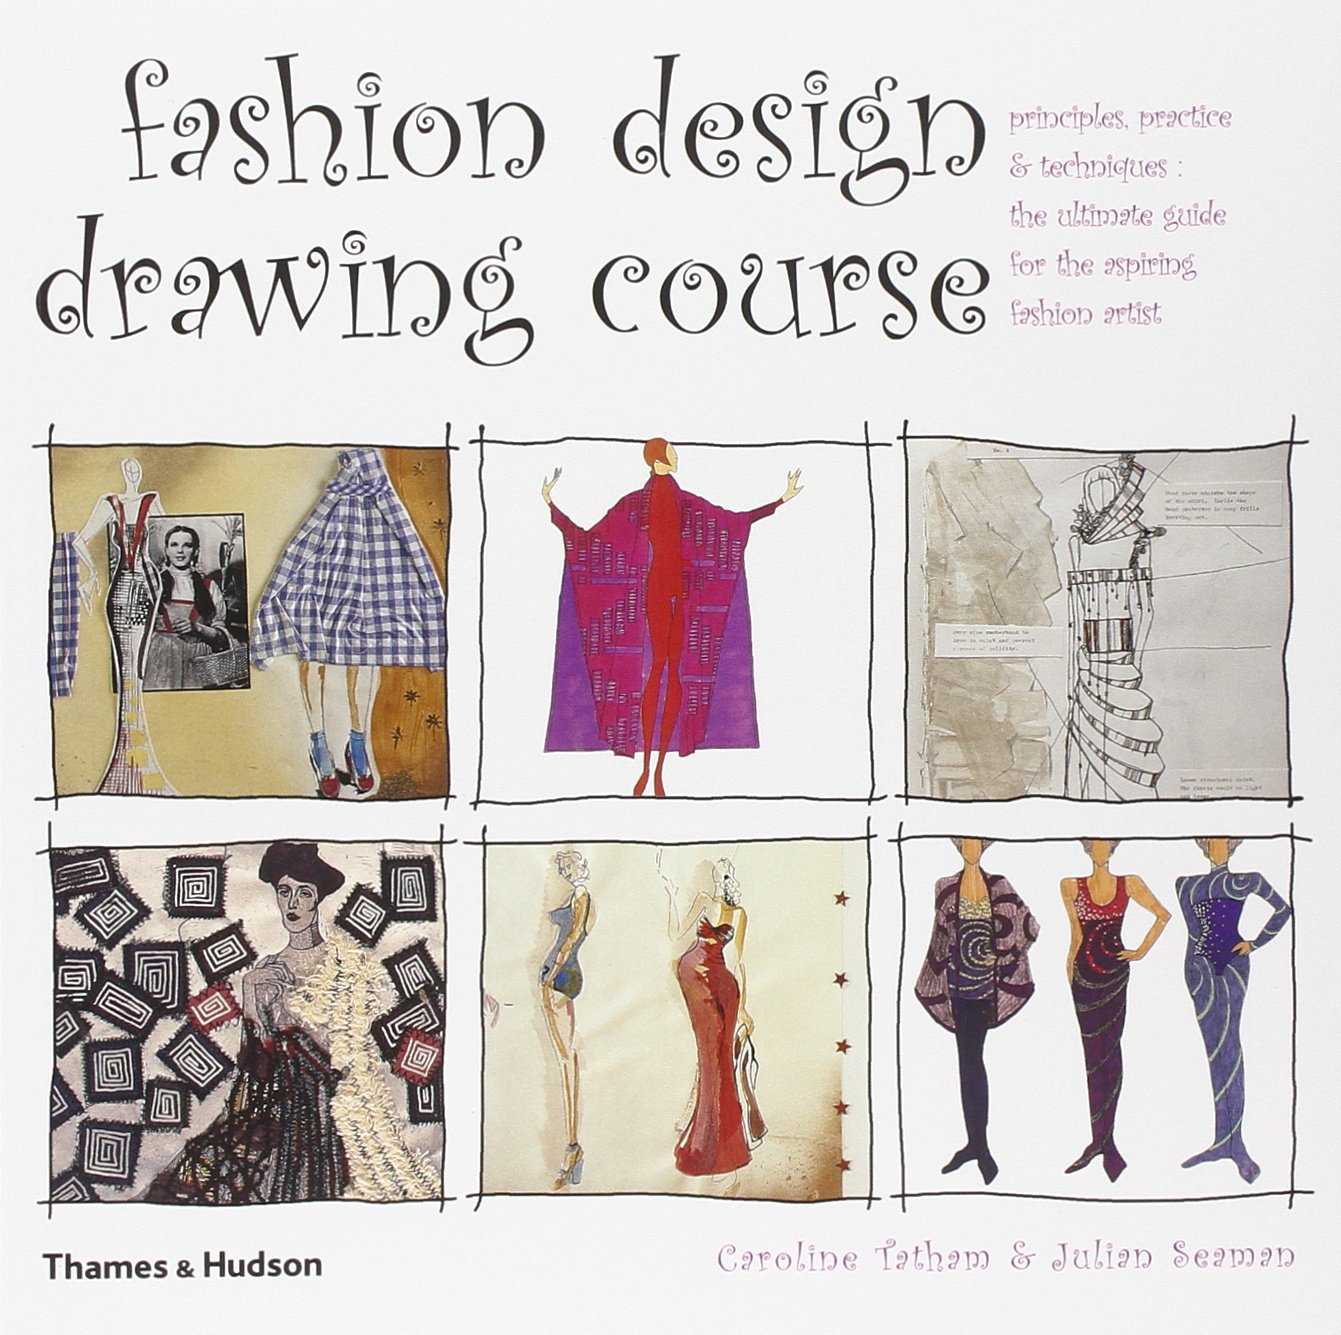 Fashion Design Drawing Course Principles Practice And Techniques